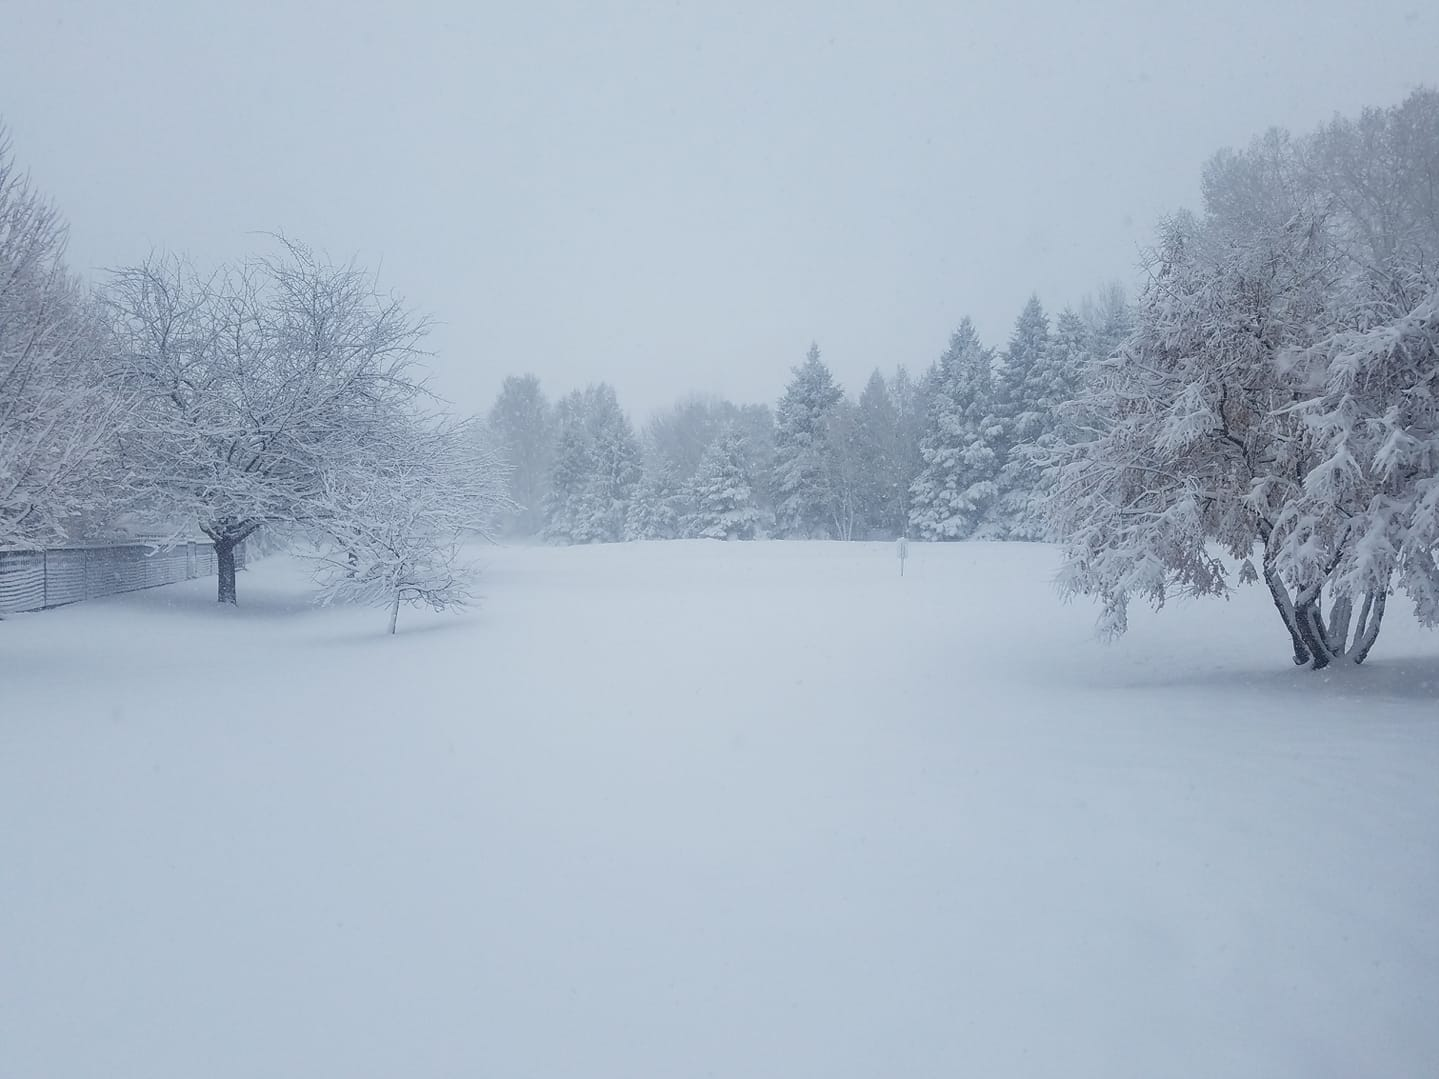 Scenes from the snowstorm of April 10, 2019 in Fort Collins and Northern Colorado